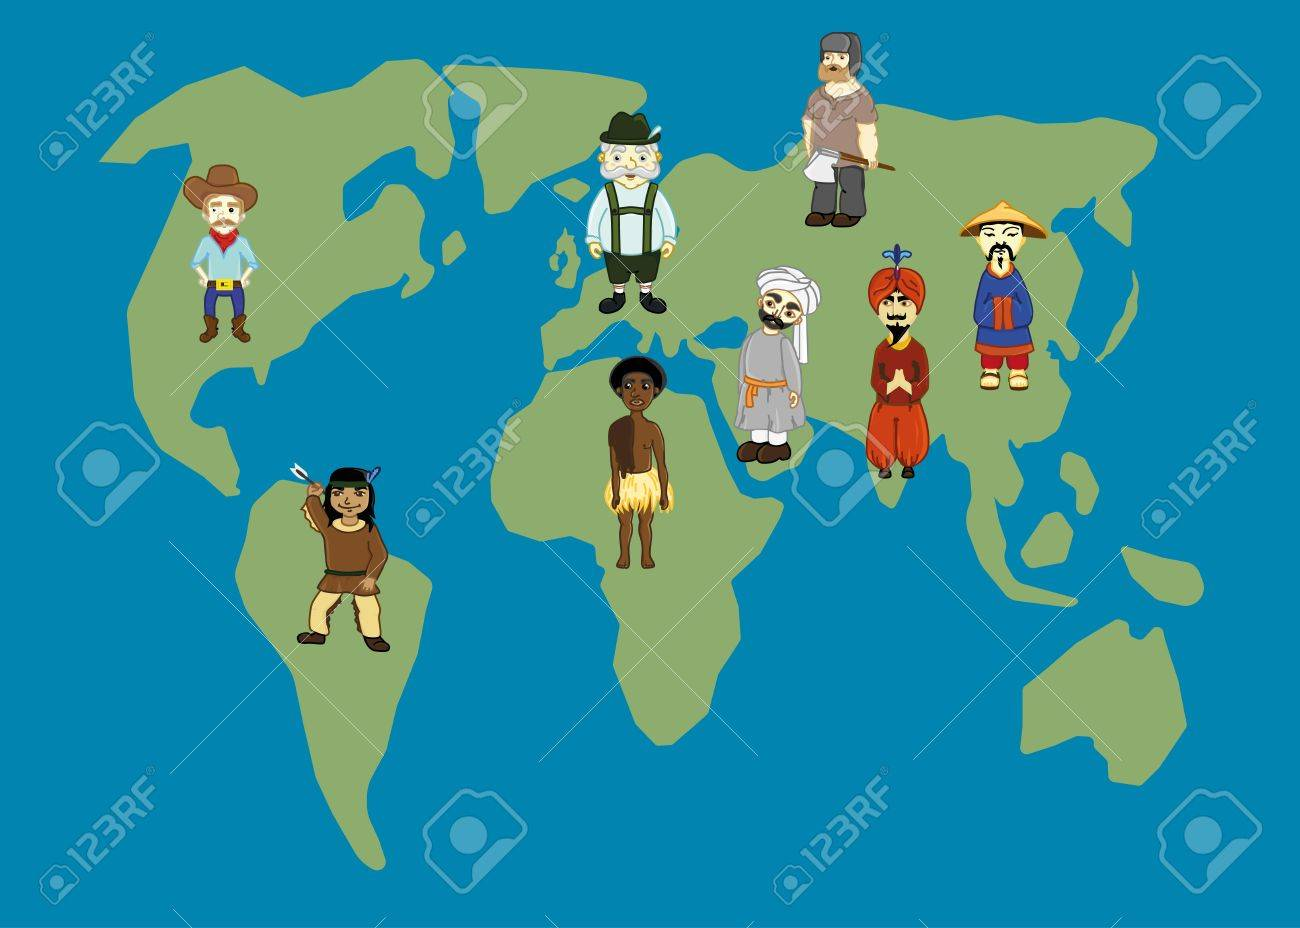 World Map And People In Traditional Costumes World Nations - World map nations